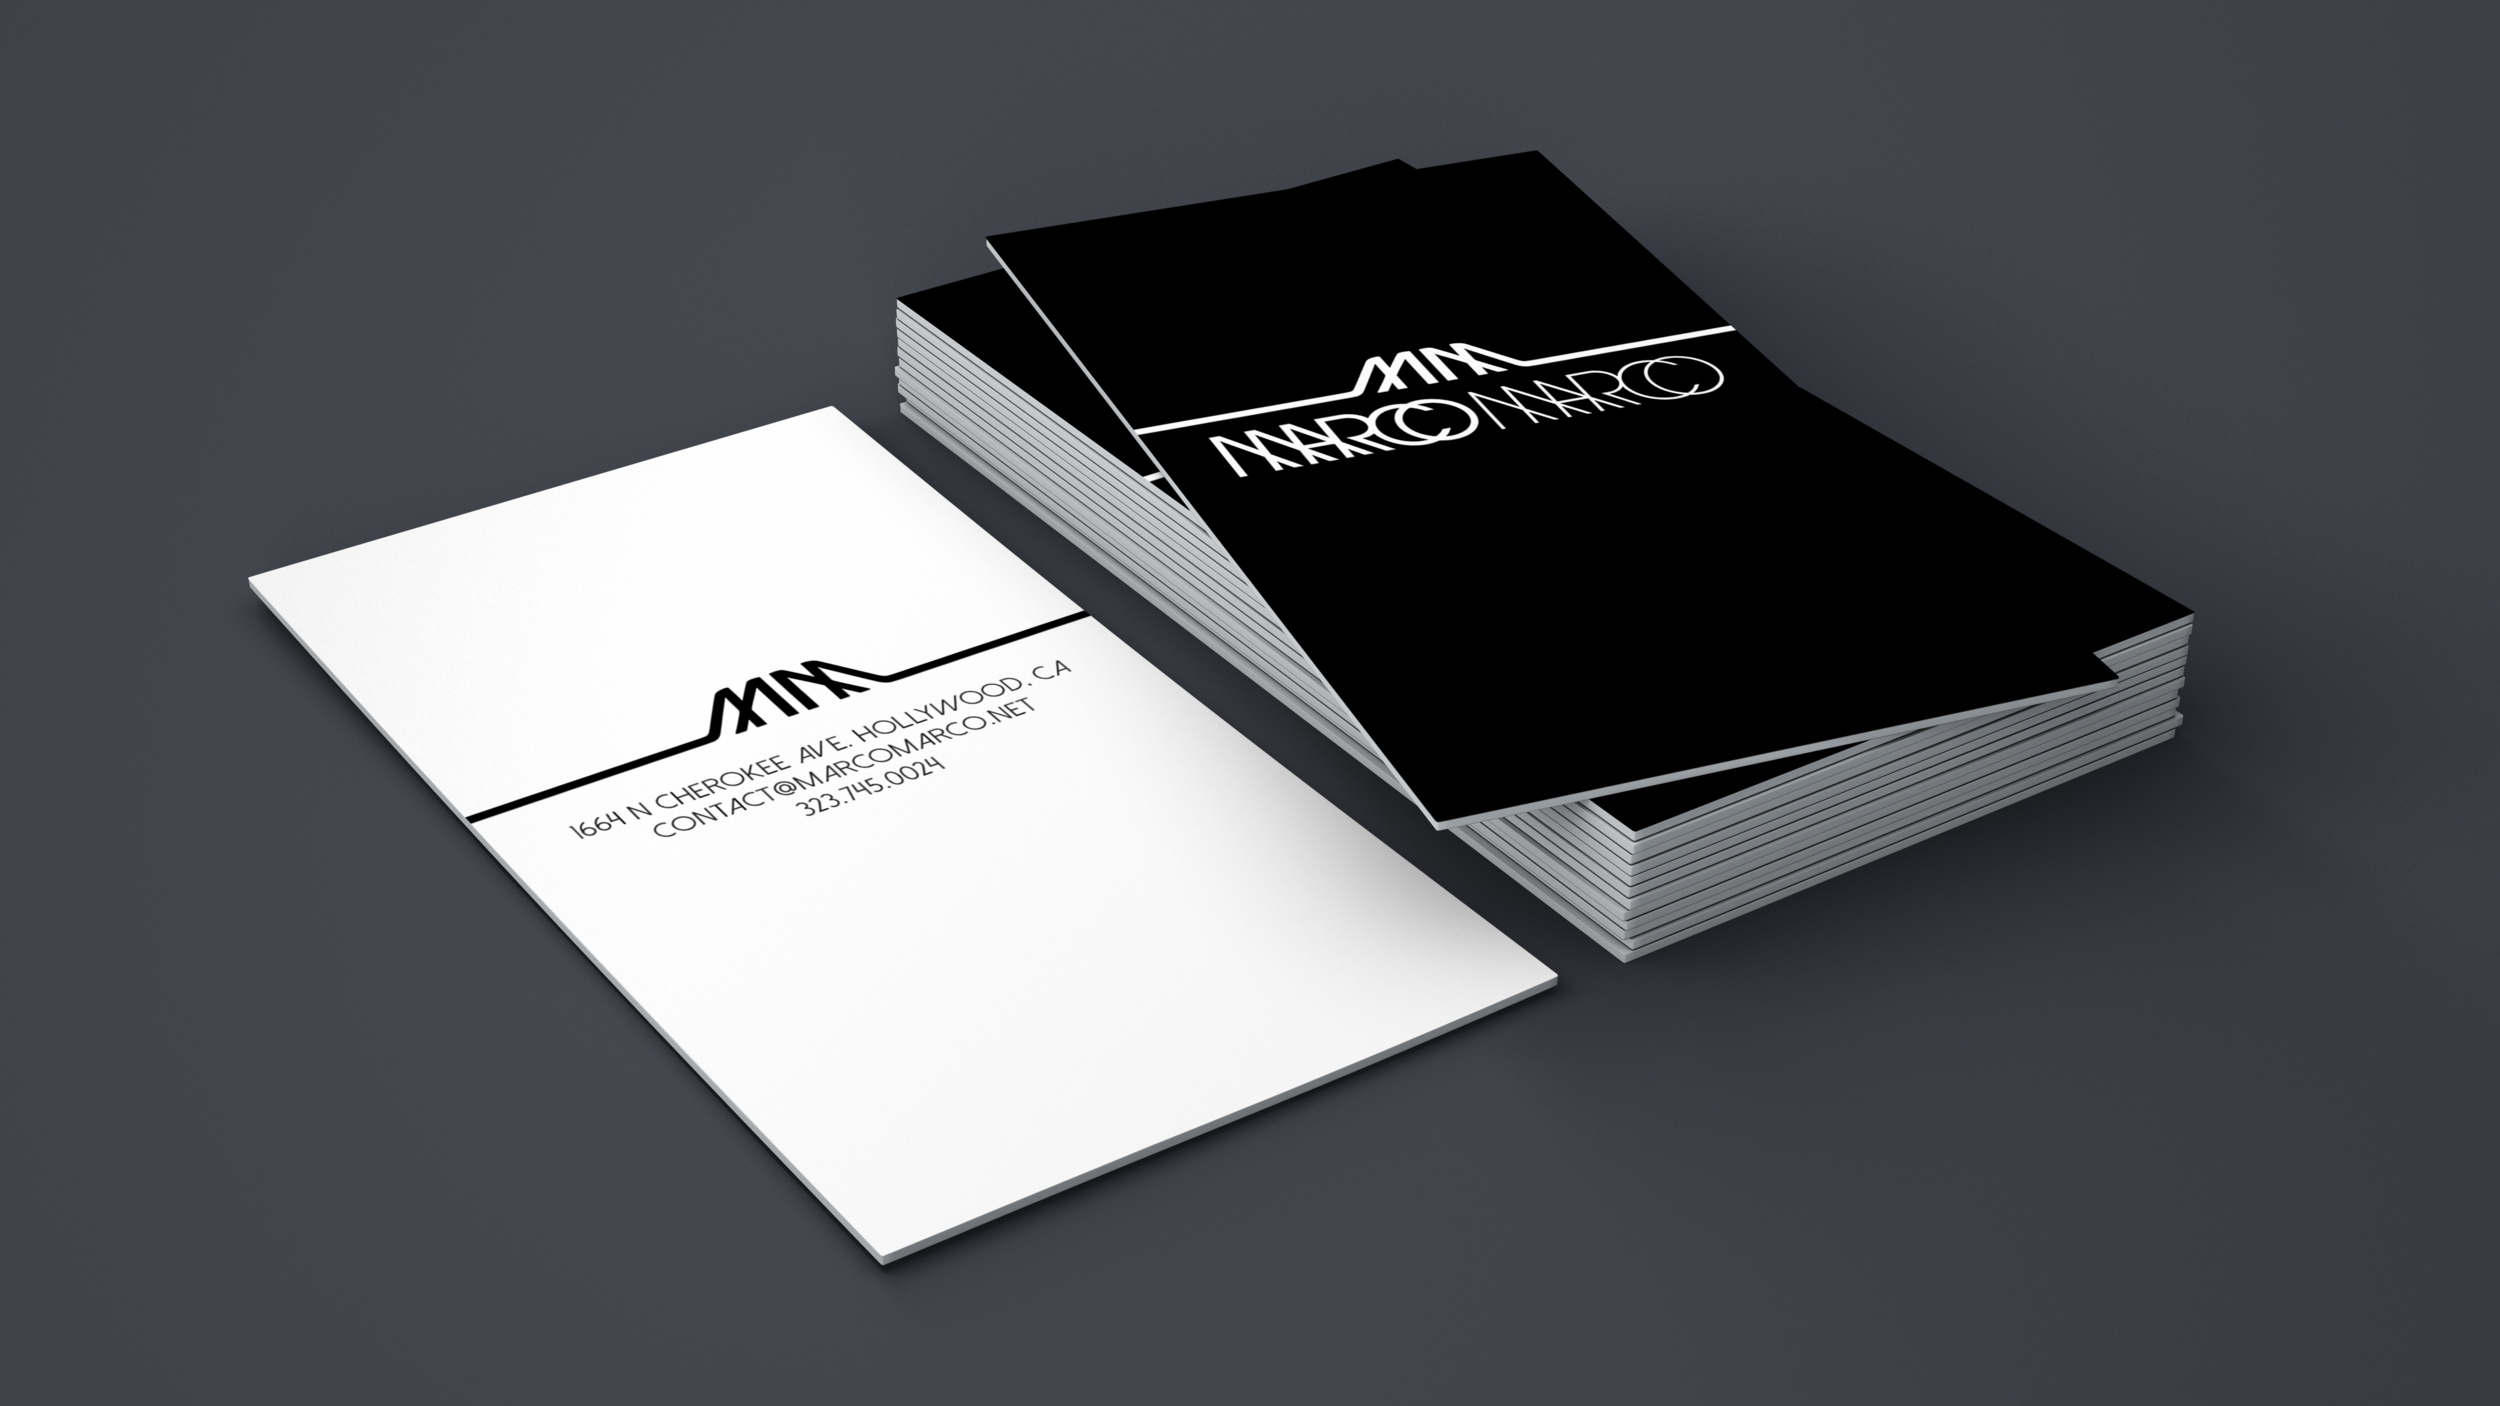 Ads, Business Cards & Postcards - Design and Development, Marketing, Photo retouching